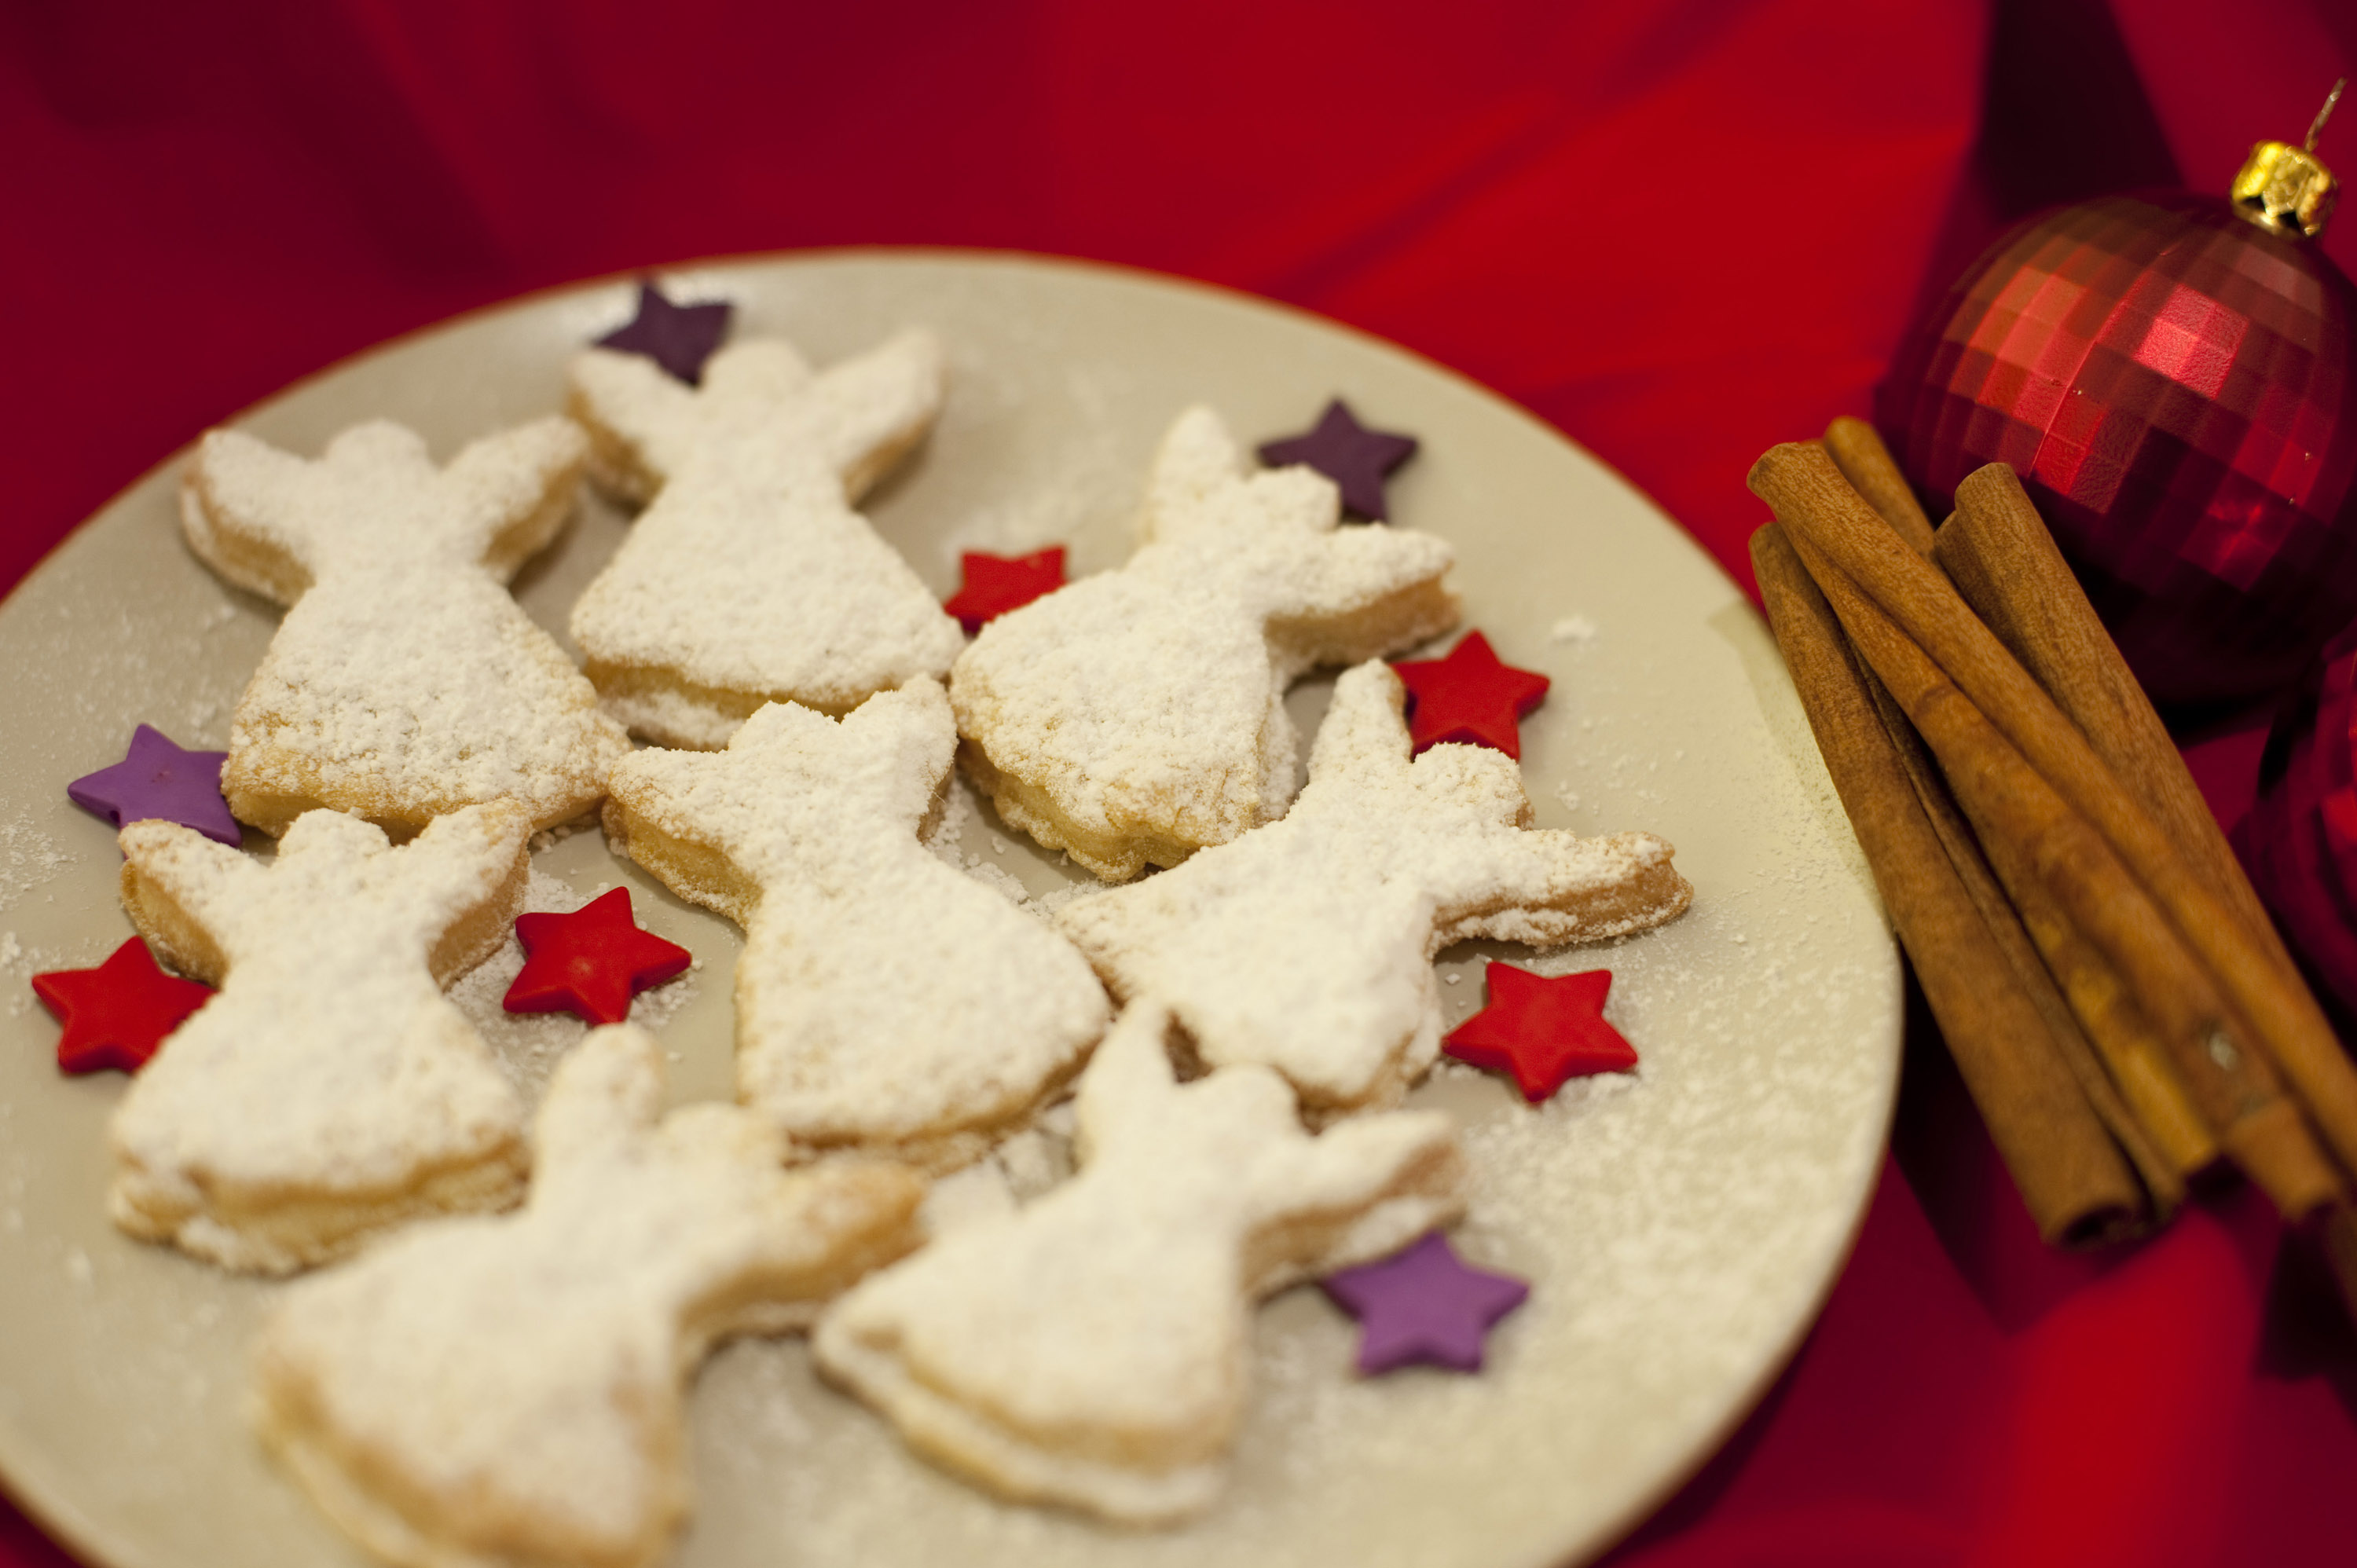 Fresh Home Baked Angel Christmas Cookies Arranged With Colourful Stars On A Plate On A Festive